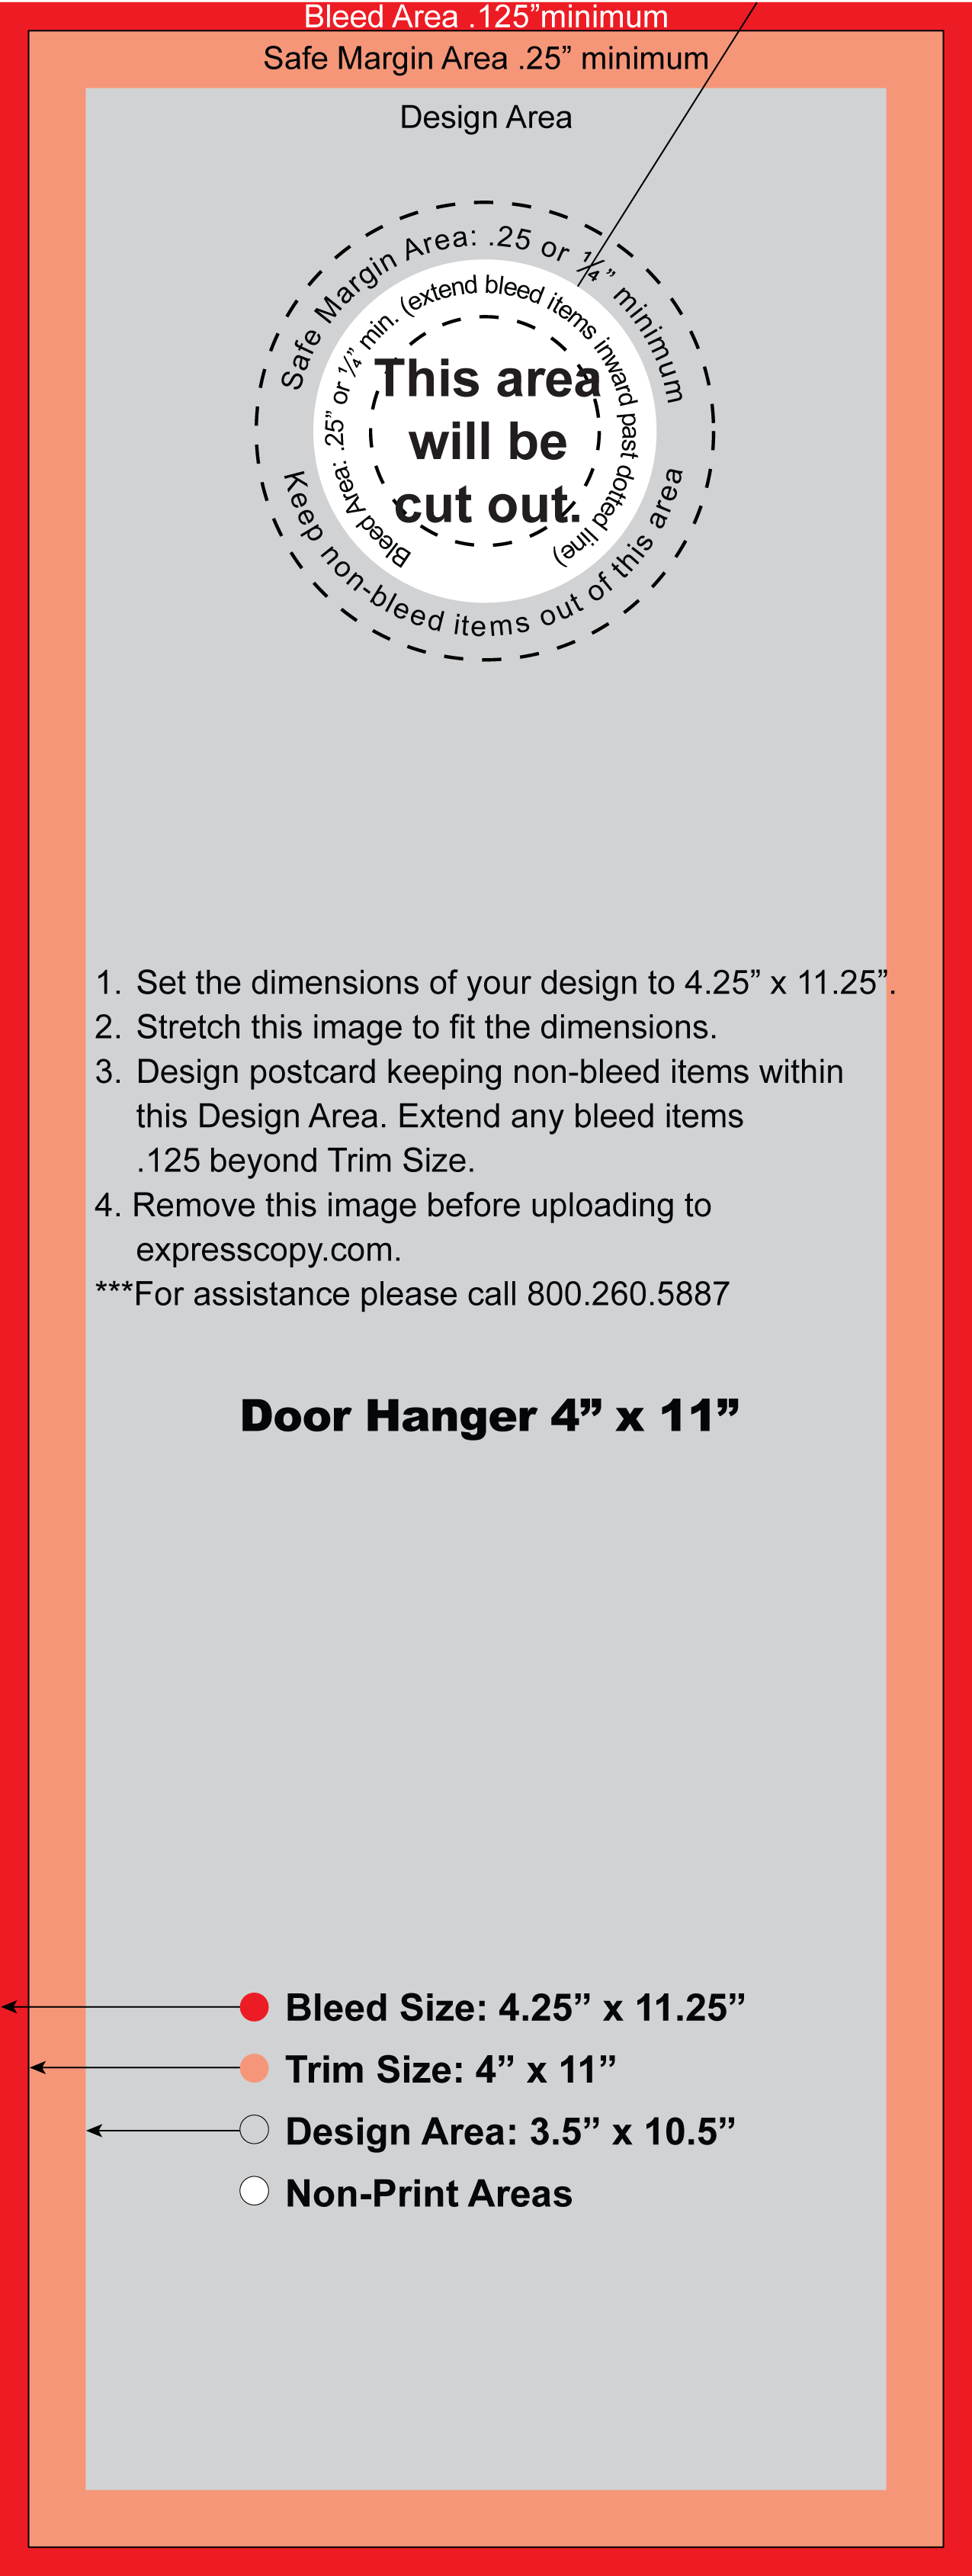 Door Hanger Design Specifications